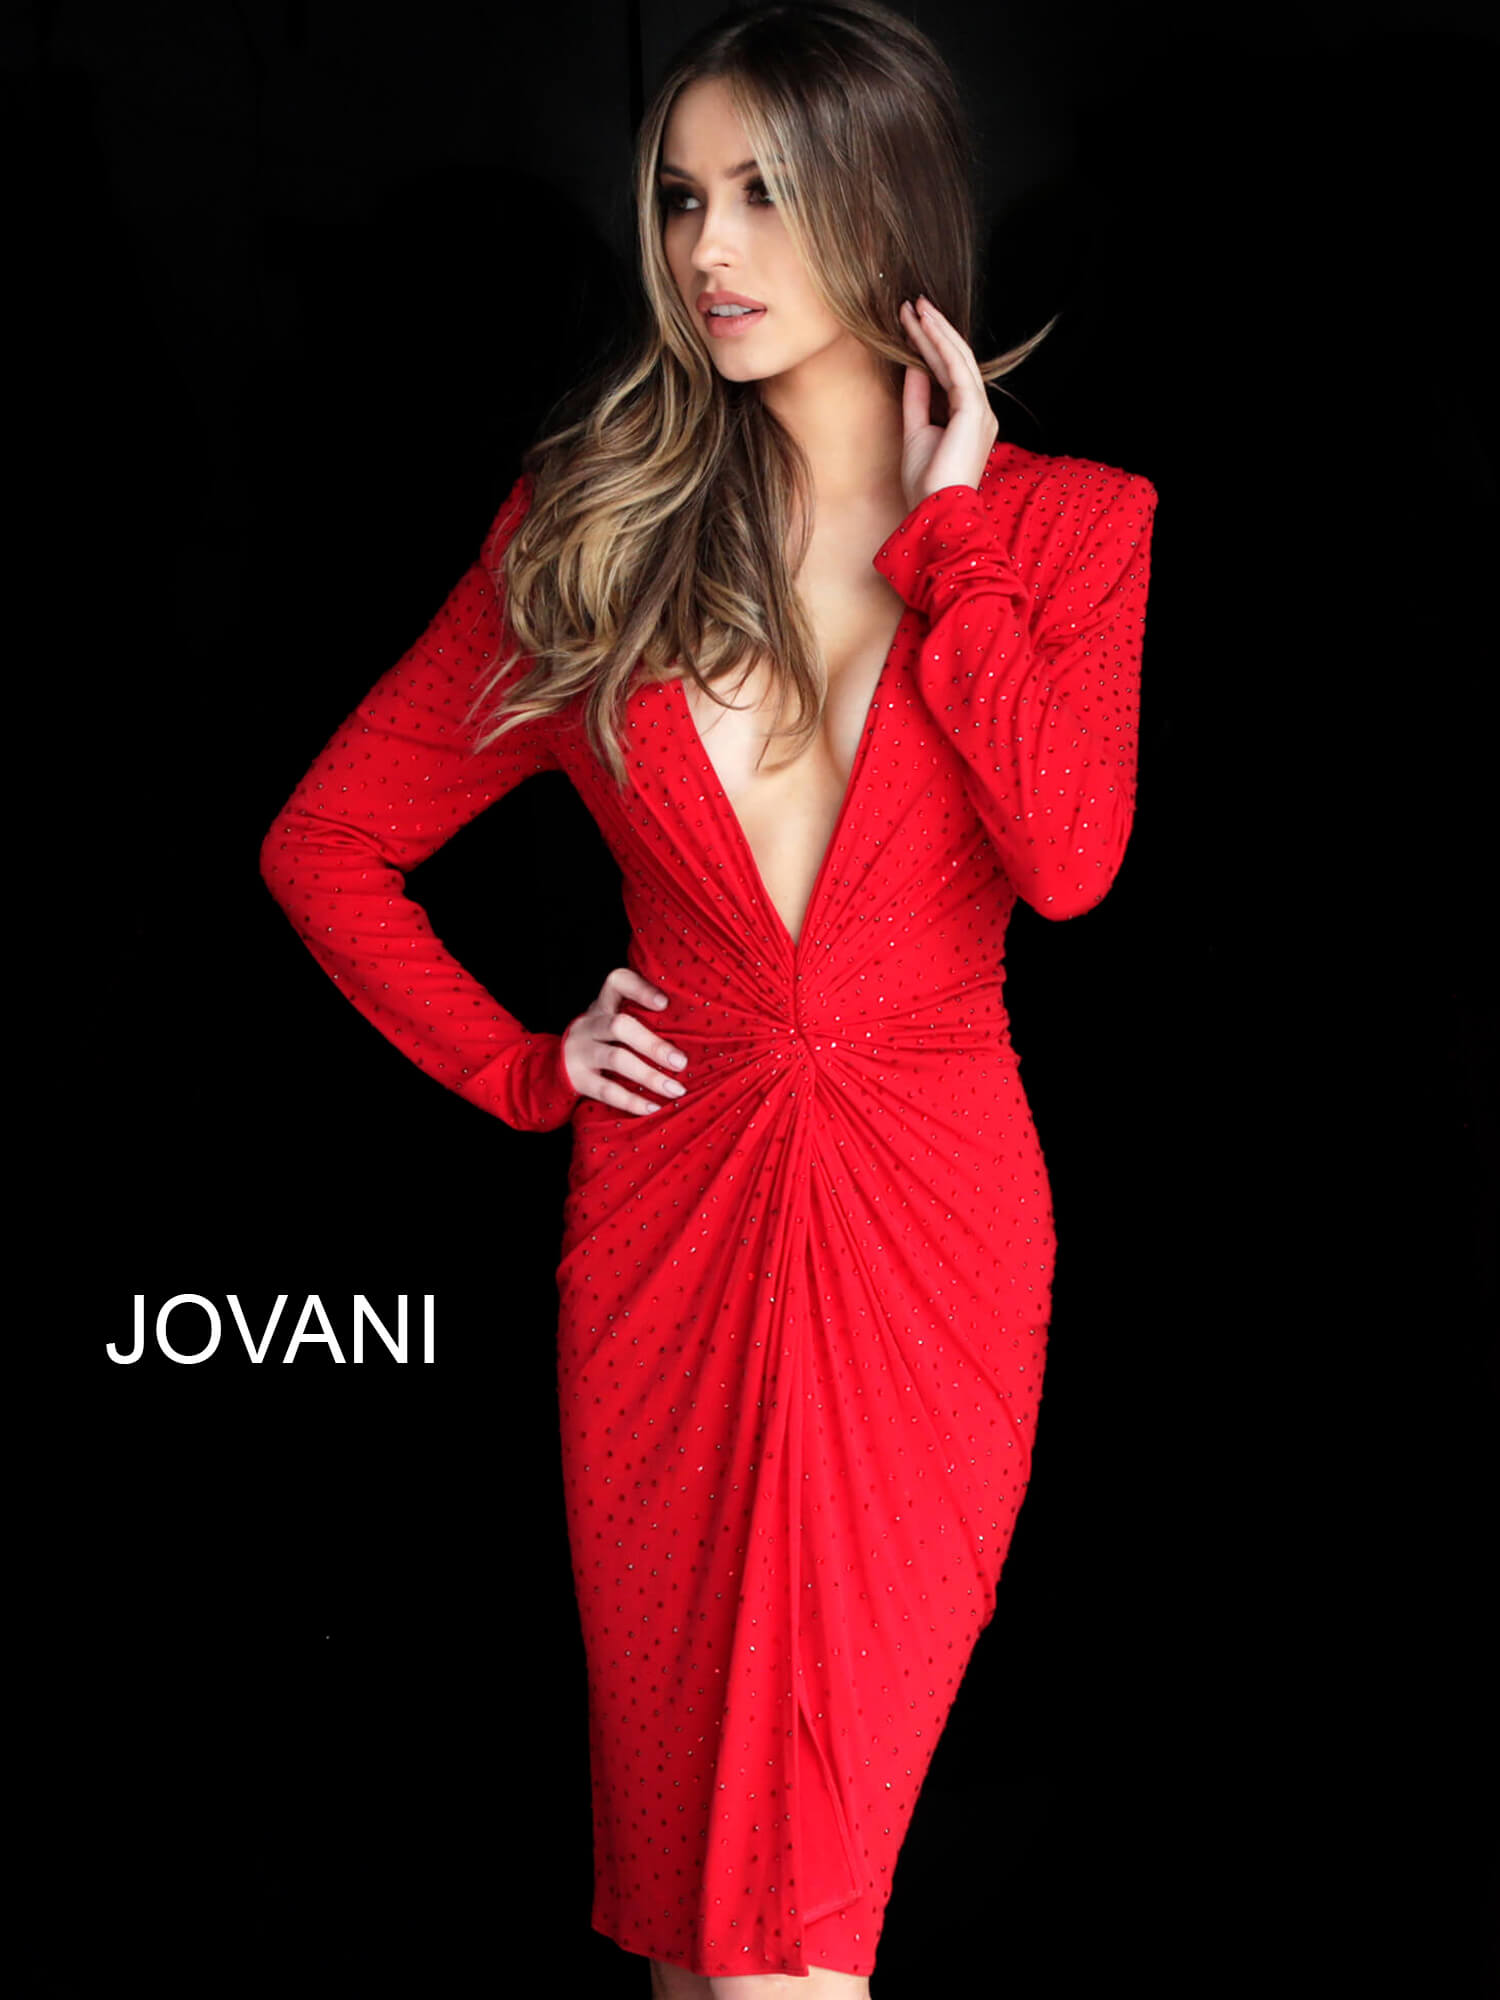 Jovani red long sleeve plunging cocktail dress 3059 on mobile 0